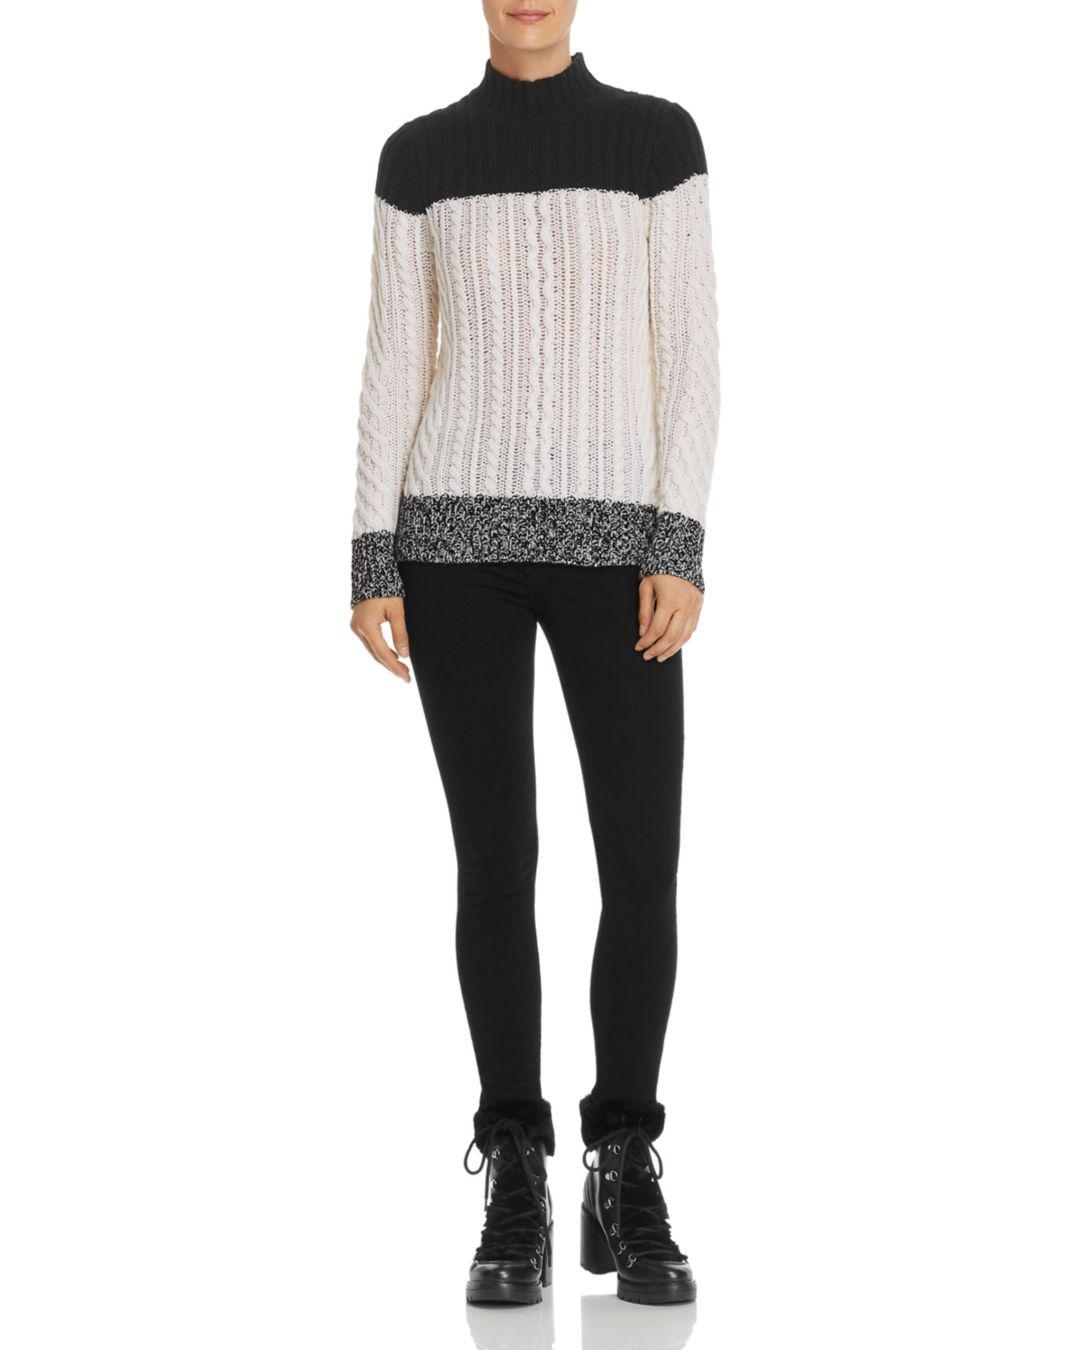 7957b29a4b9 Lyst - C By Bloomingdale's Mixed Knit Color-block Cashmere Sweater ...